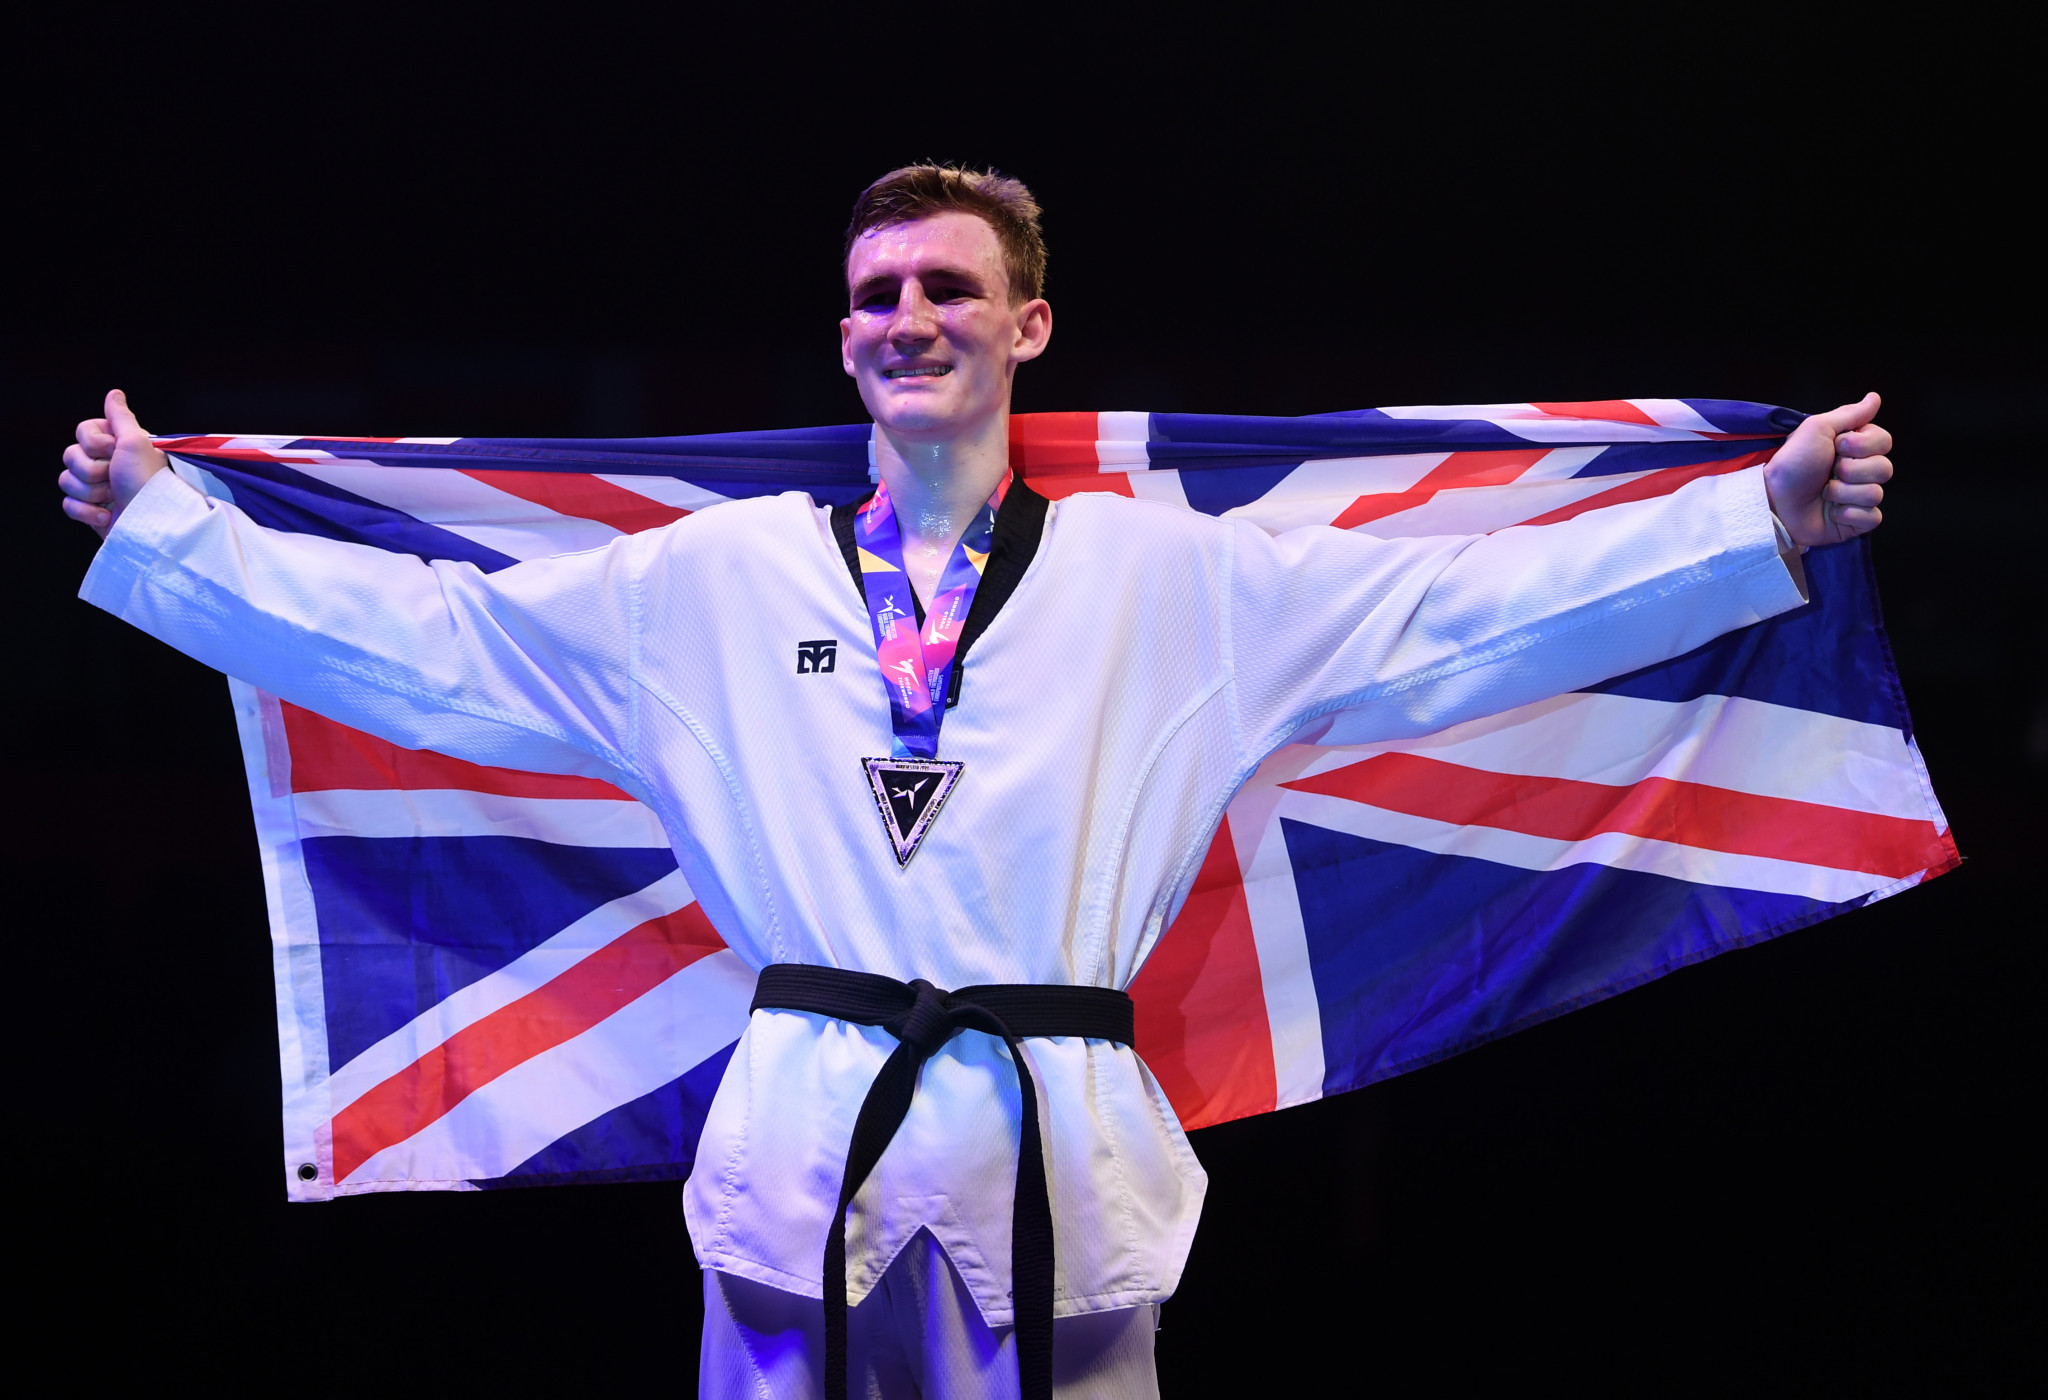 Britain also won gold through Bradly Sinden in the men's under-68kg and he became the first British male taekwondo world champion ©Getty Images